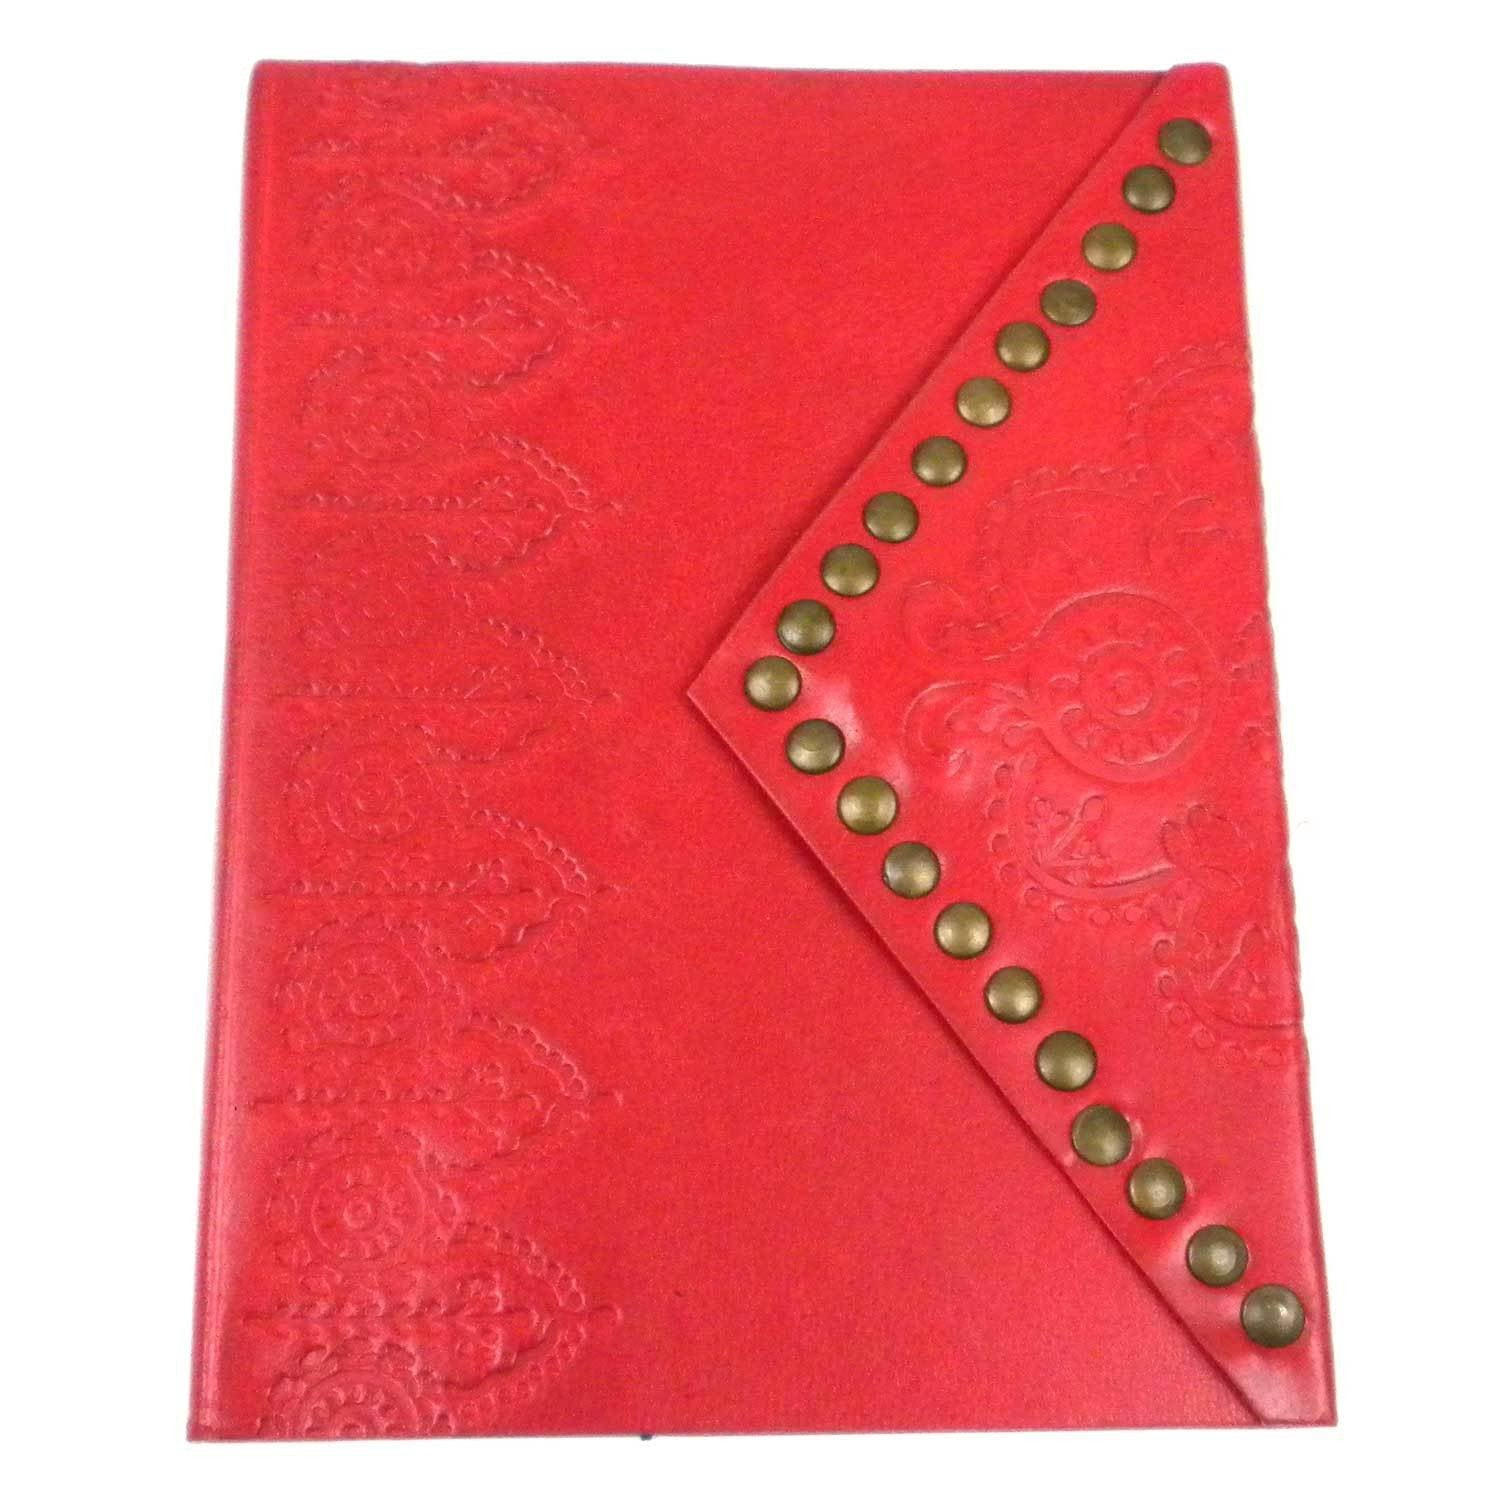 Nailhead Journal ● Scarlet Gifts and Accessories Matr Boomie - Mandala Sol